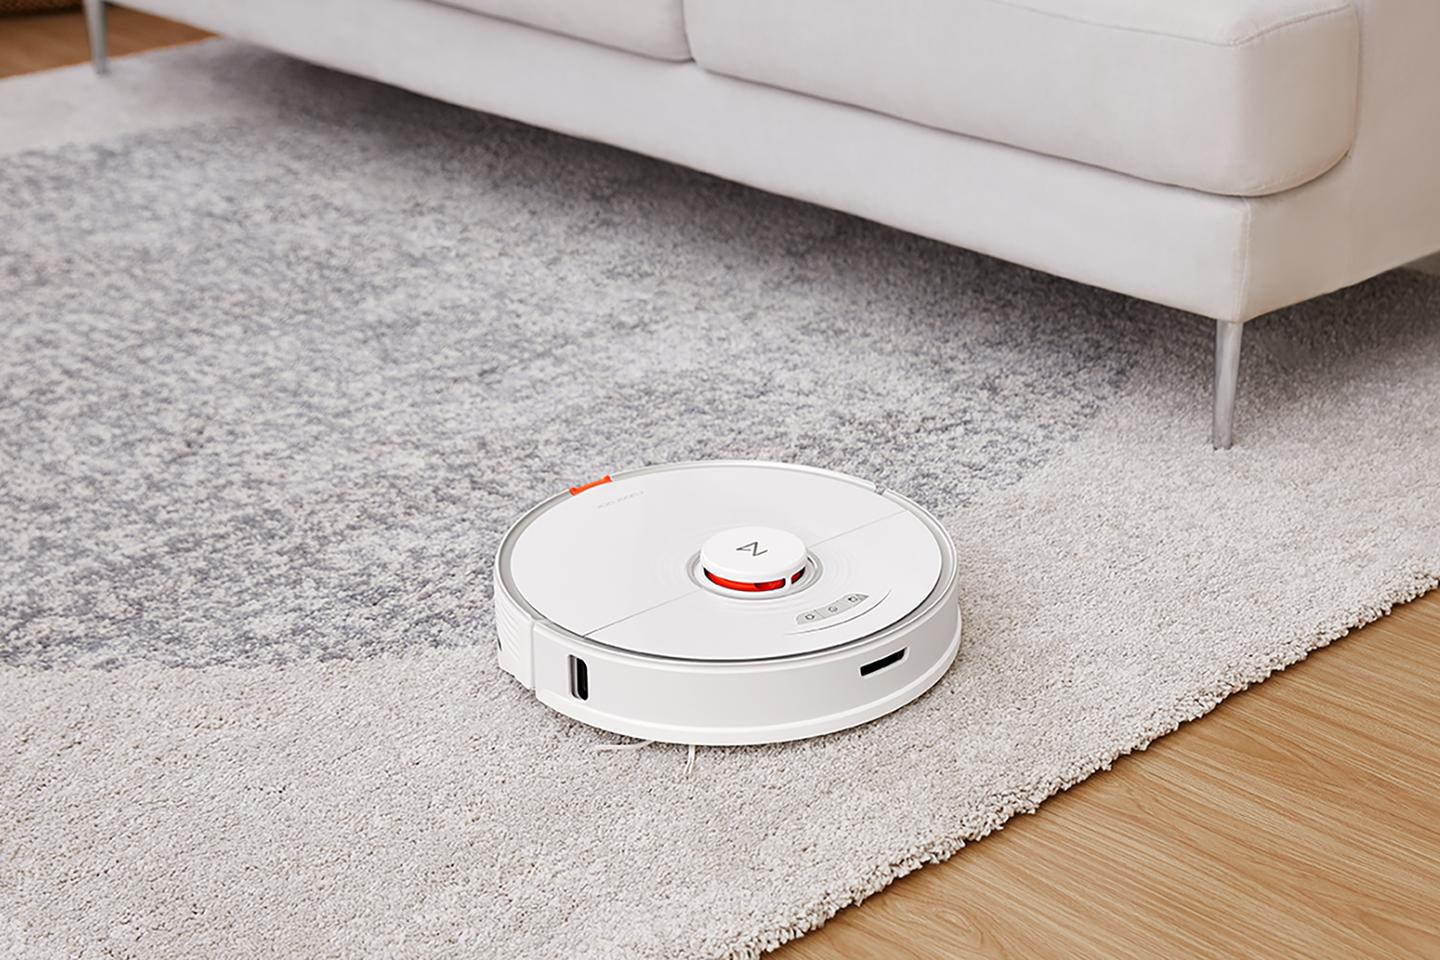 The Roborock S7 can vacuum and mop on the same cleaning cycle